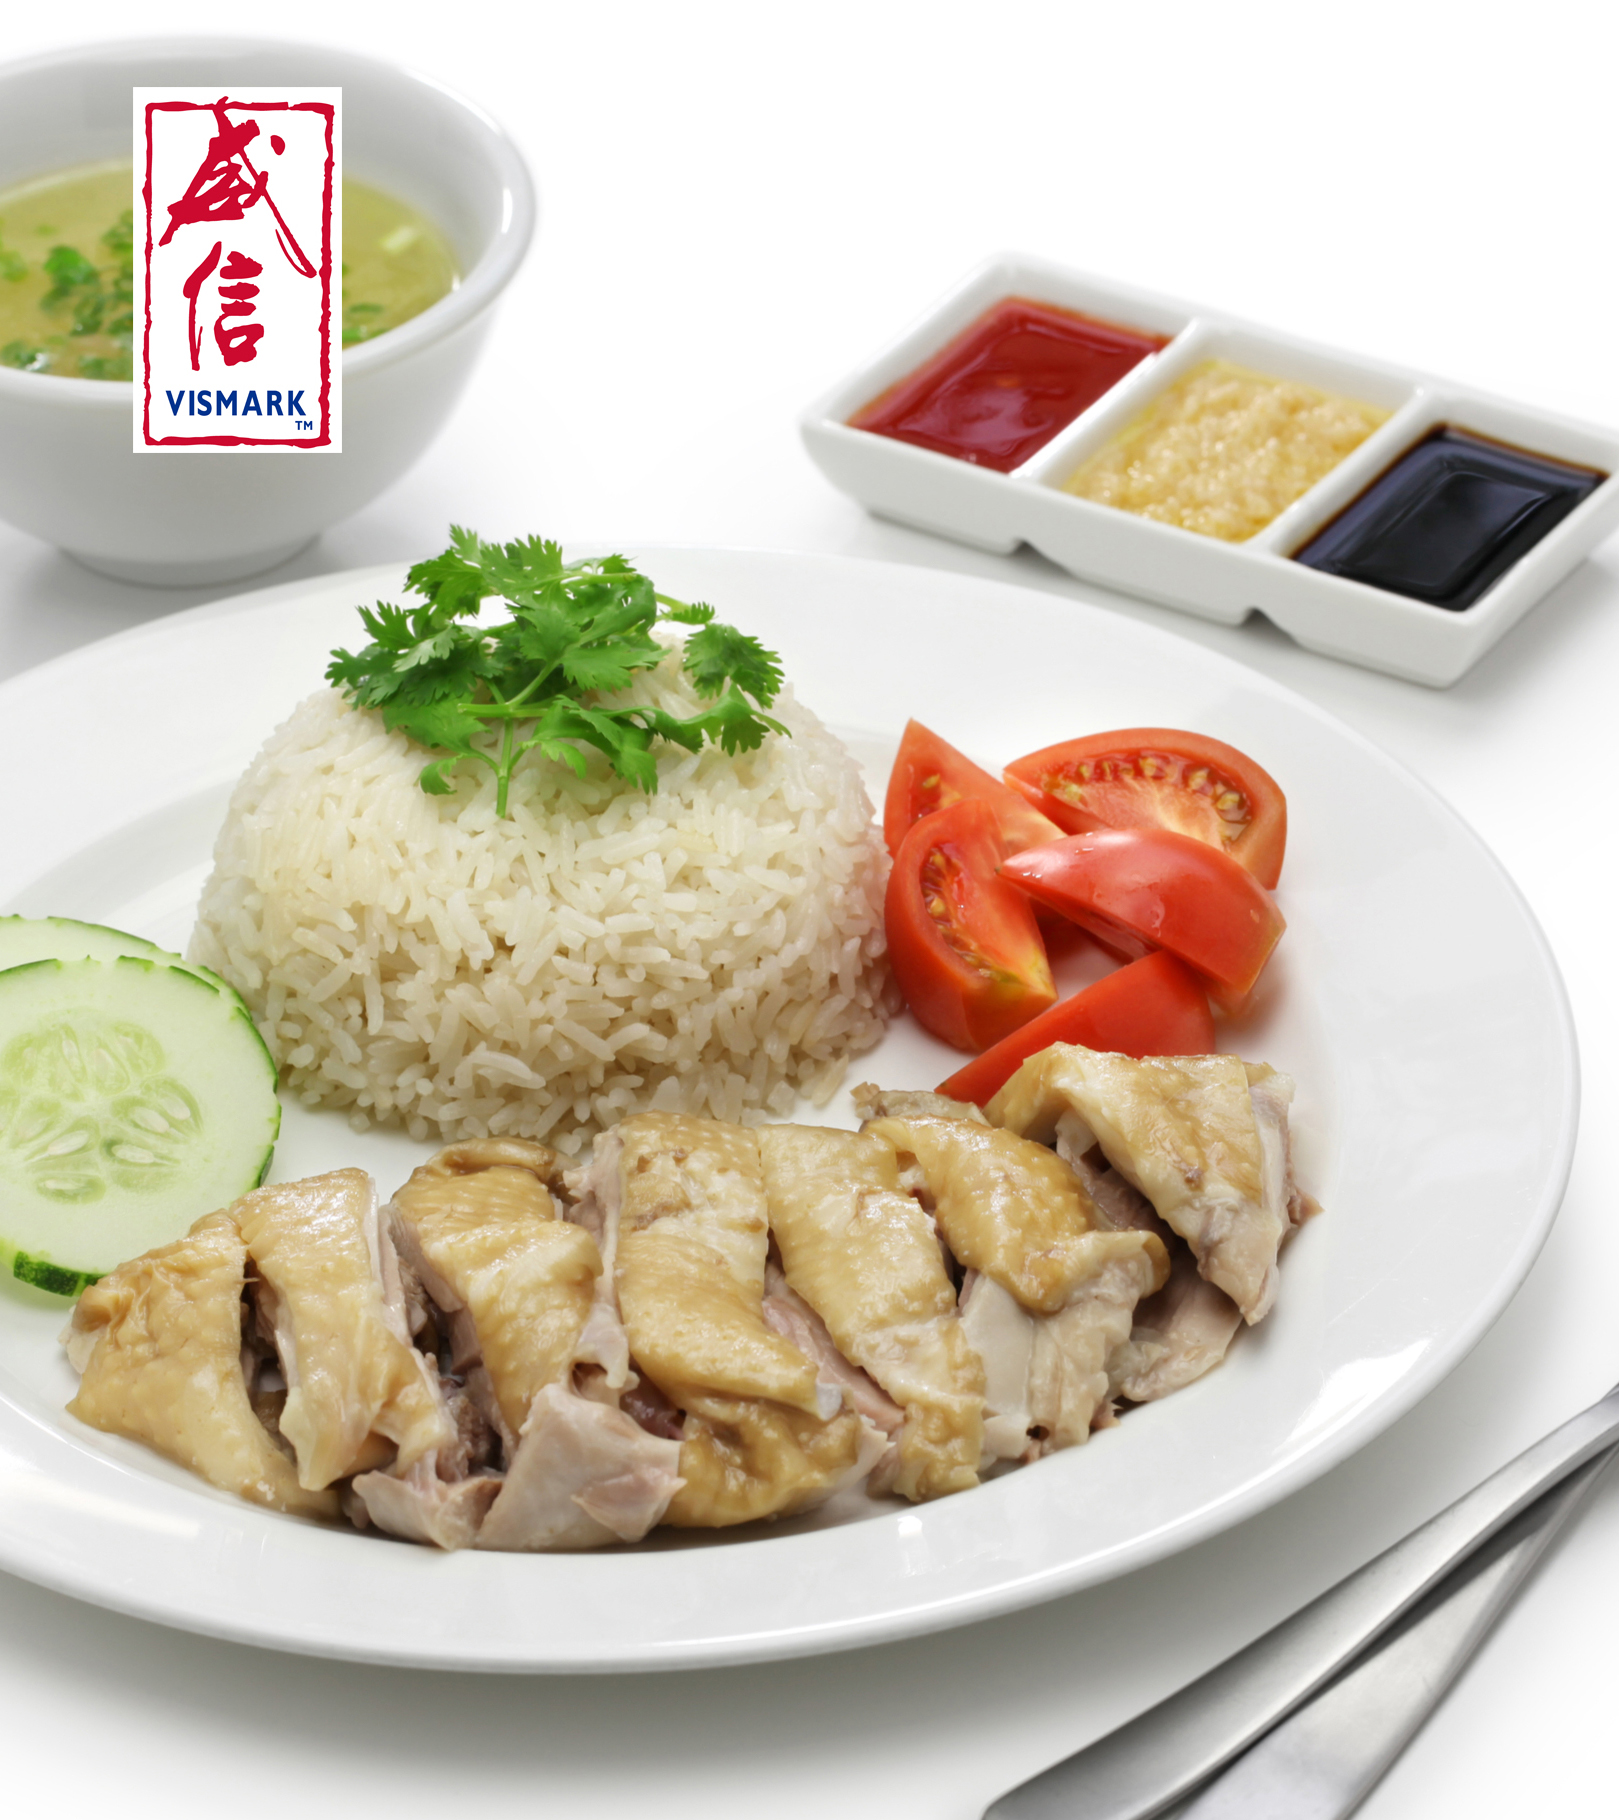 https://vismark.com.sg/wp-content/uploads/2019/06/Website-Chicken-Rice-3-for-Quote-Me-Form.jpg